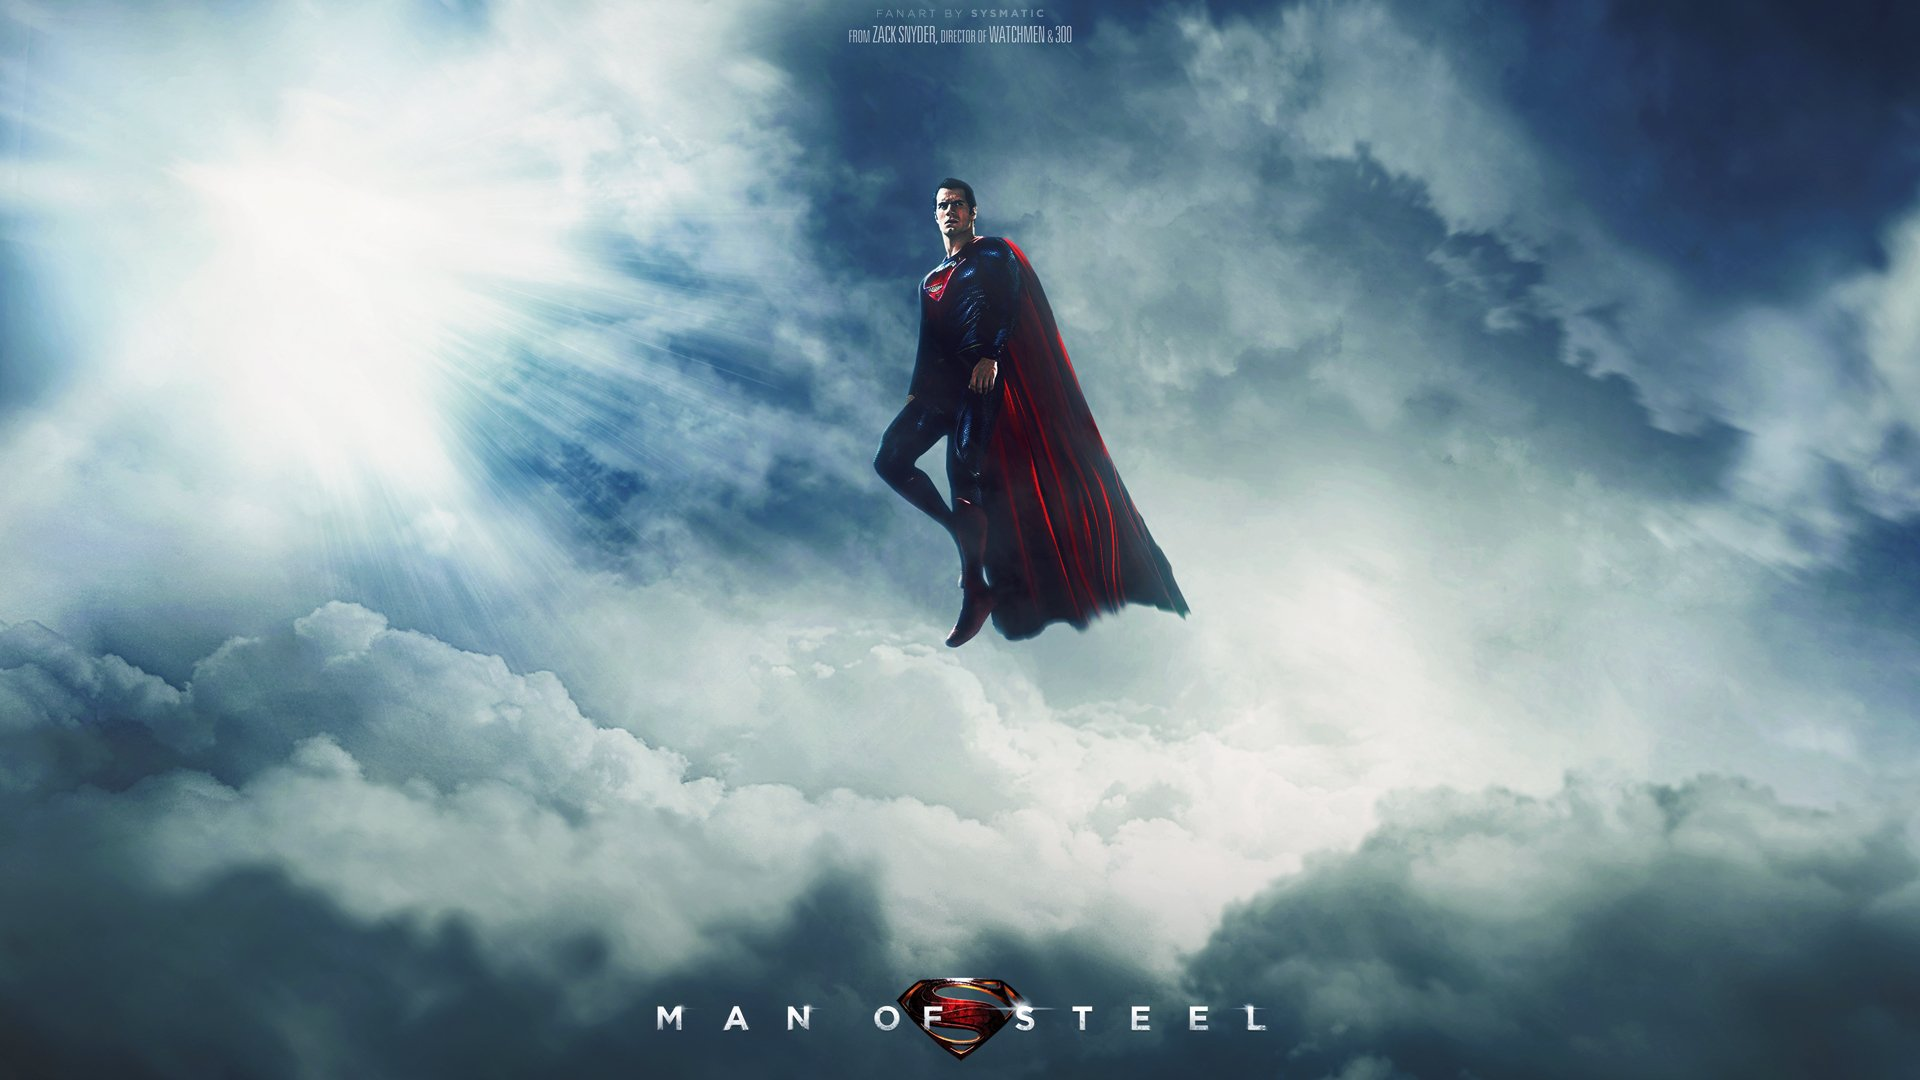 man of steel wallpaper superman movie 03 1920x1080